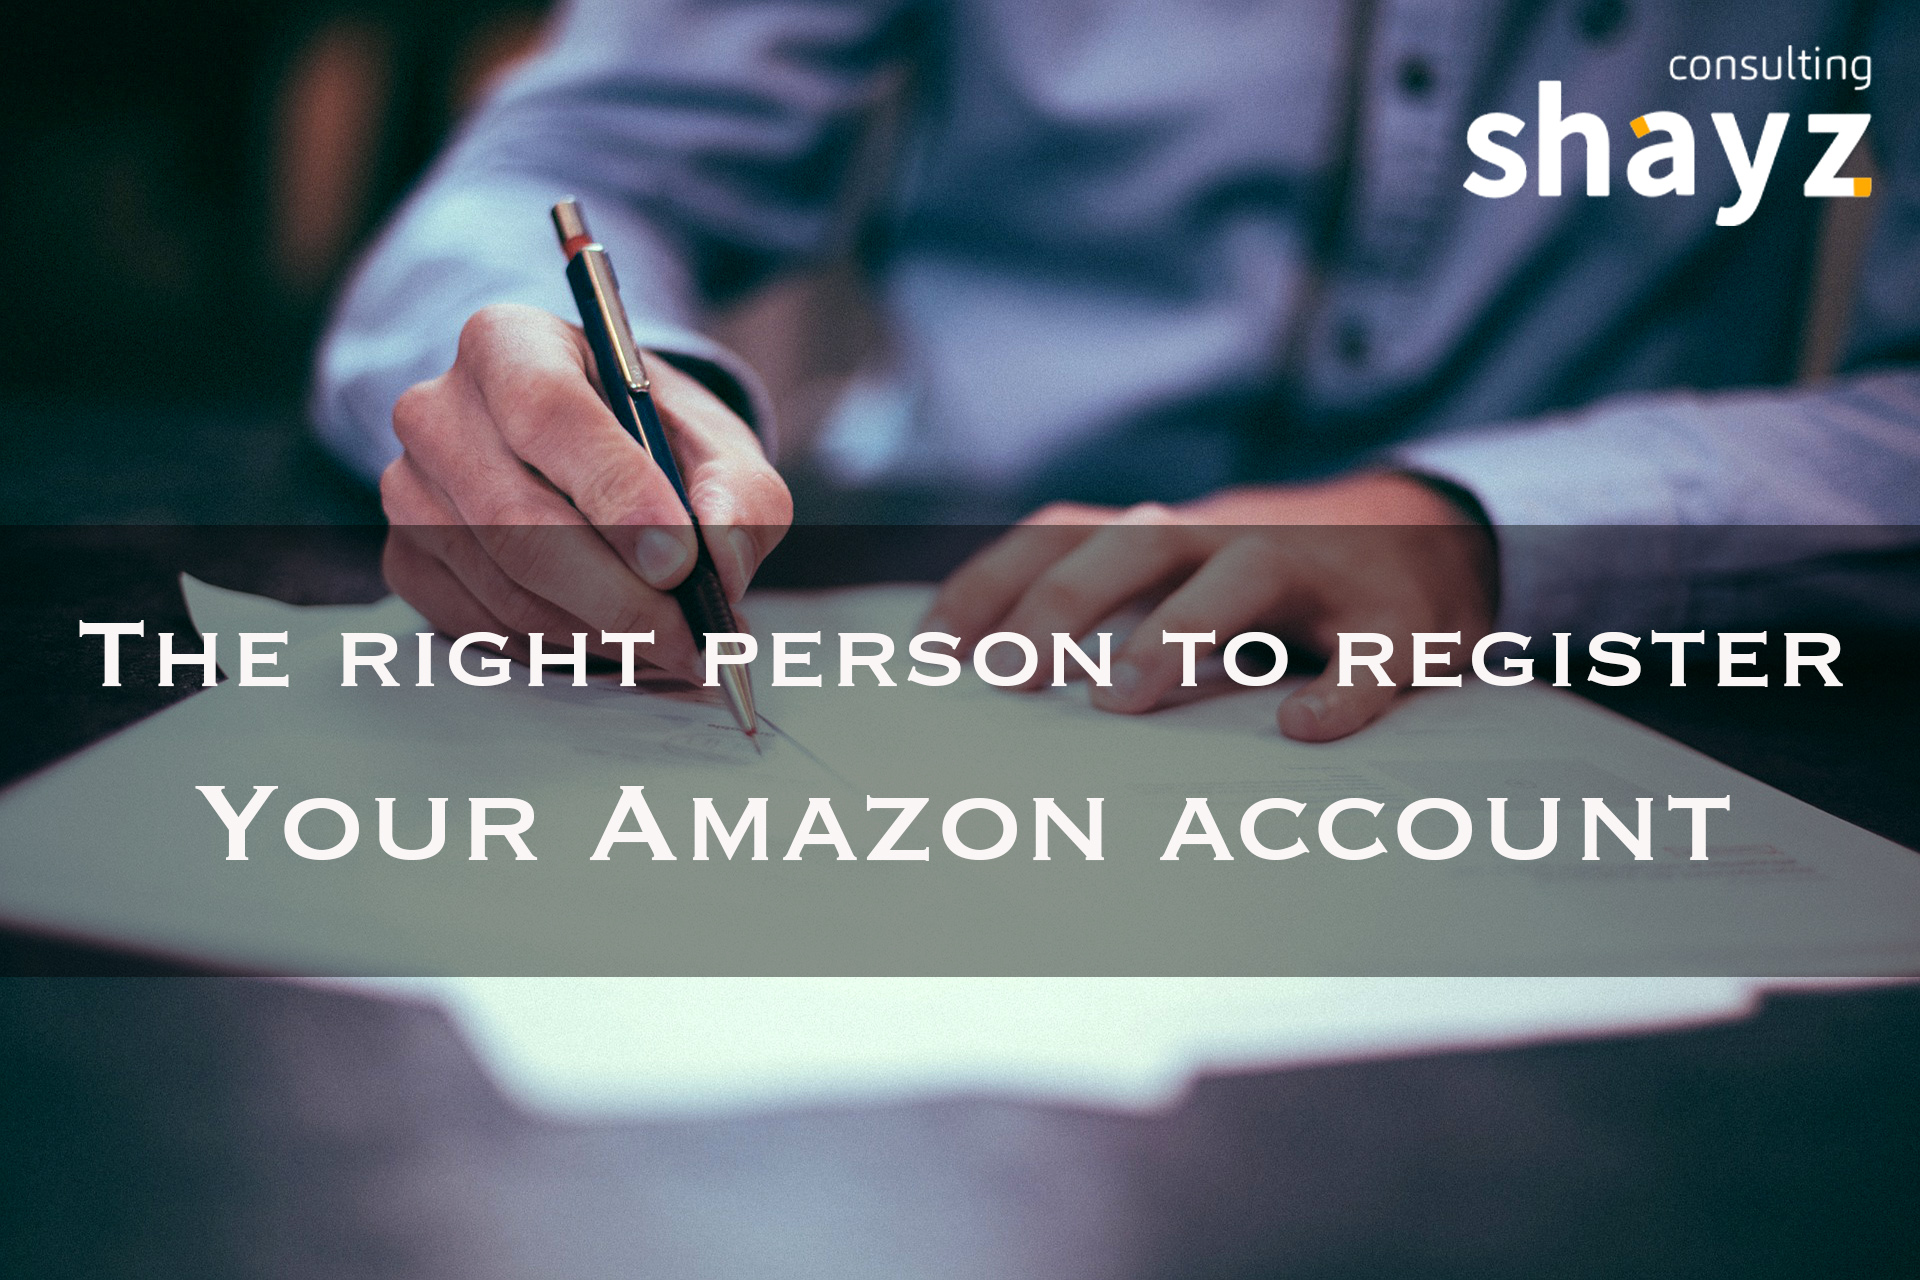 The right person to register your Amazon account